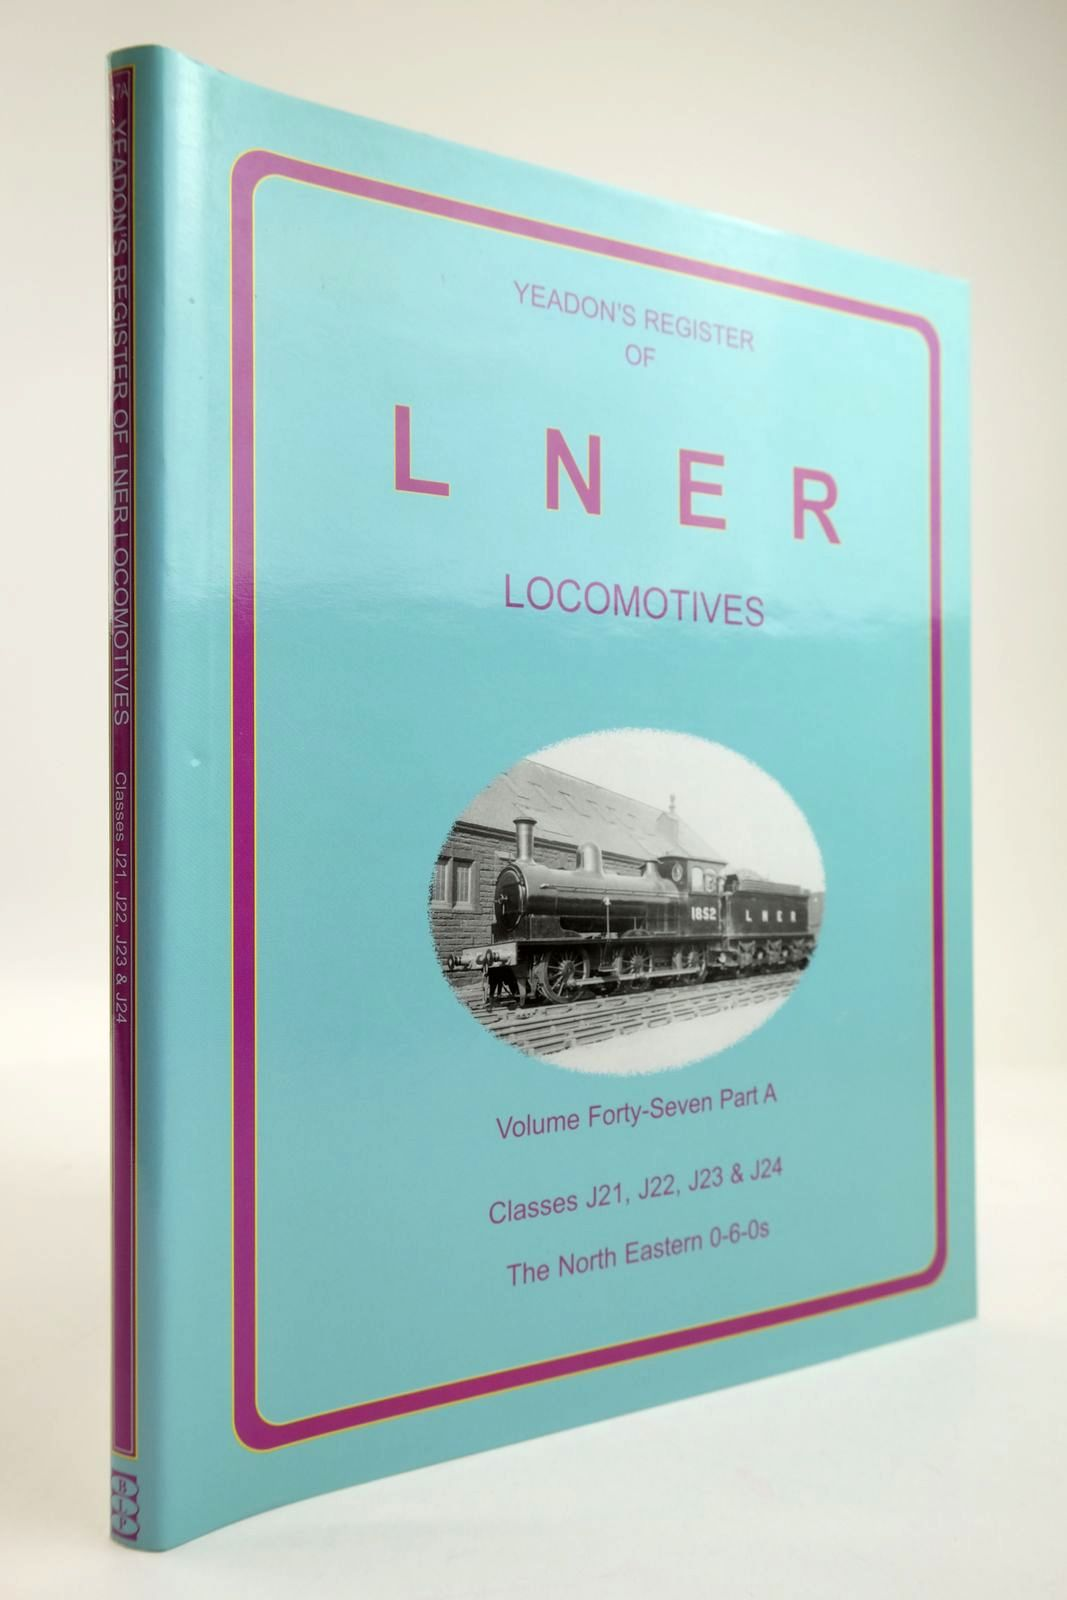 Photo of YEADON'S REGISTER OF LNER LOCOMOTIVES VOLUME FORTY SEVEN PART A written by Yeadon, W.B. published by Book Law Publications, Challenger Publications (STOCK CODE: 2133790)  for sale by Stella & Rose's Books